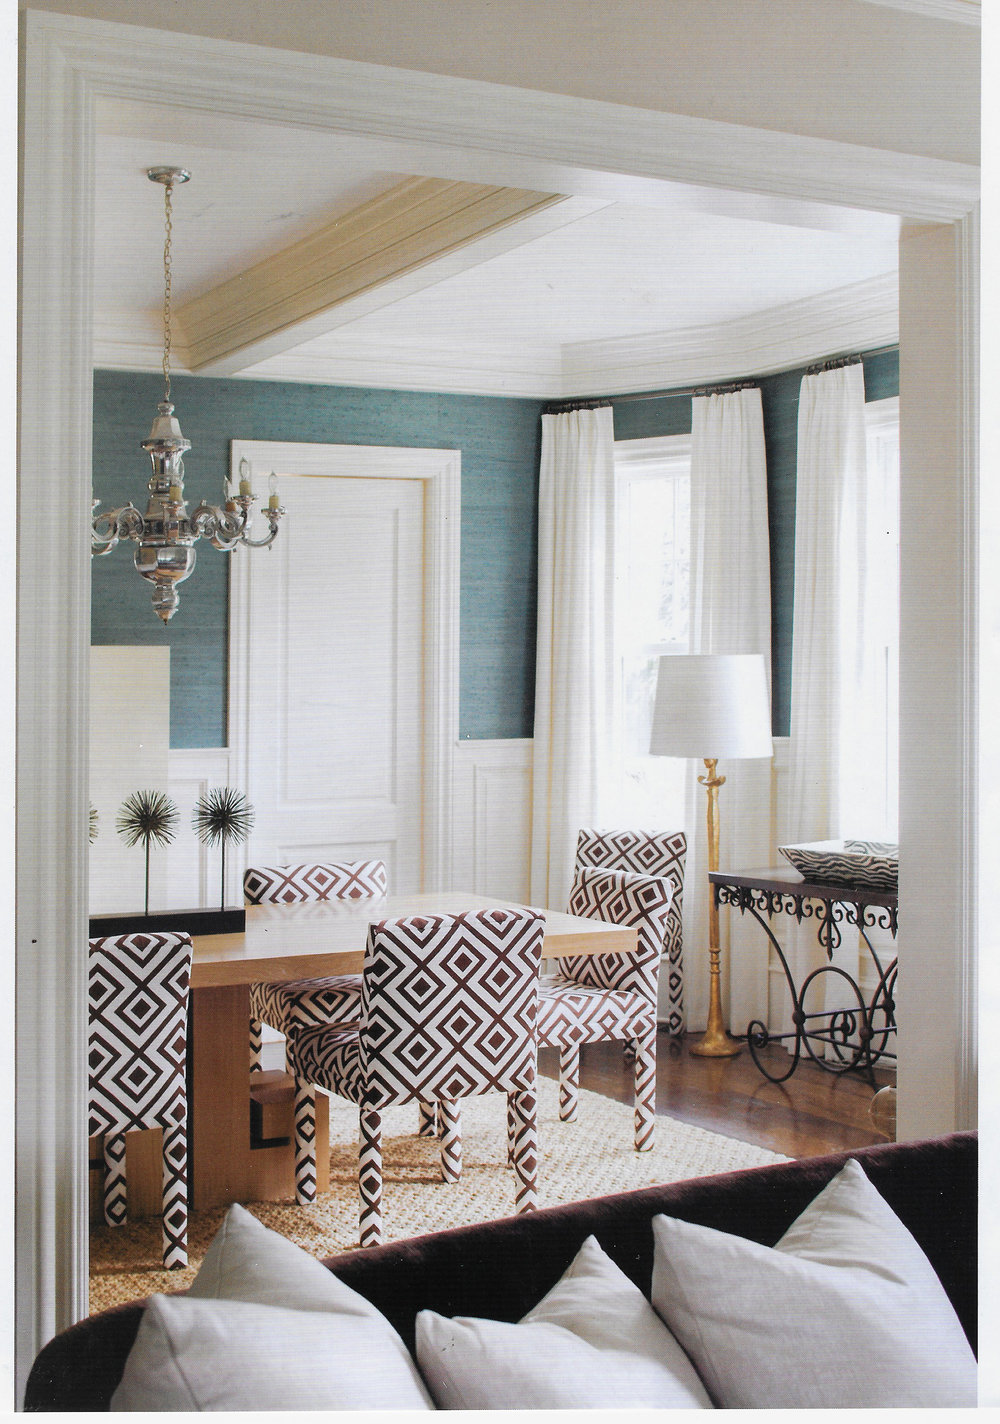 East Coast Home Design January 2014 D2 Interieurs